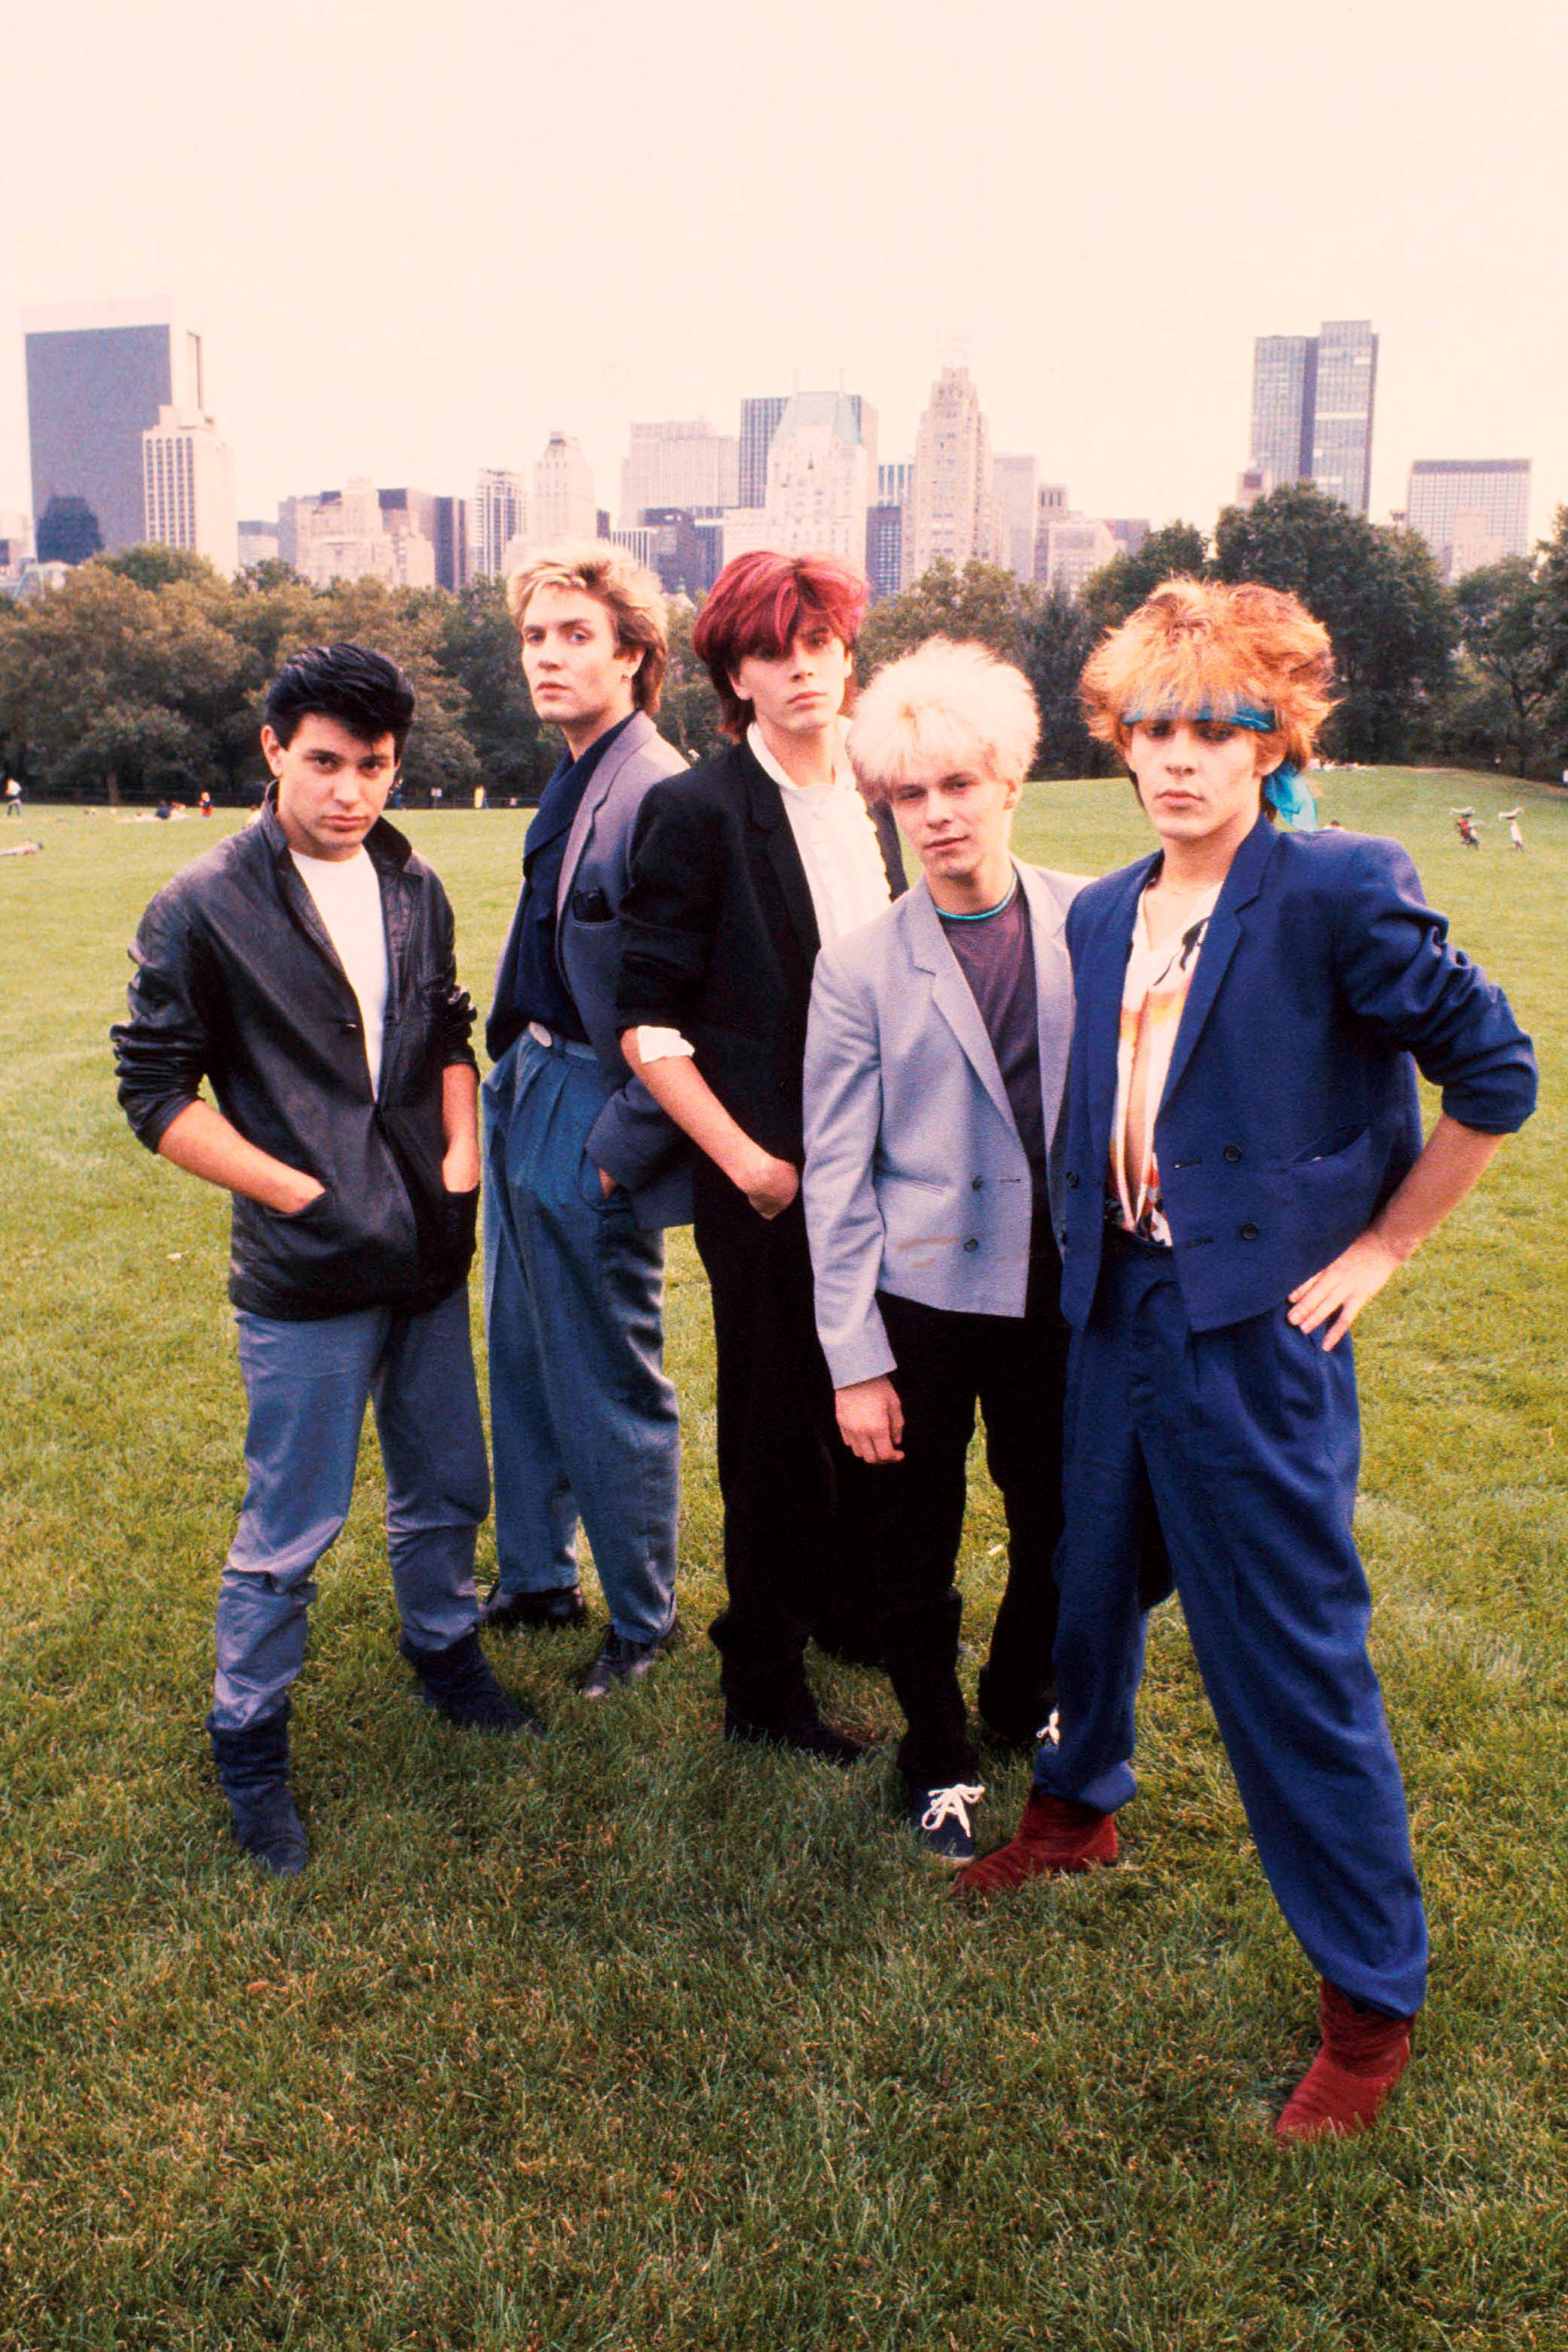 20 Catchy Songs From the '80s - Best Eighties Music